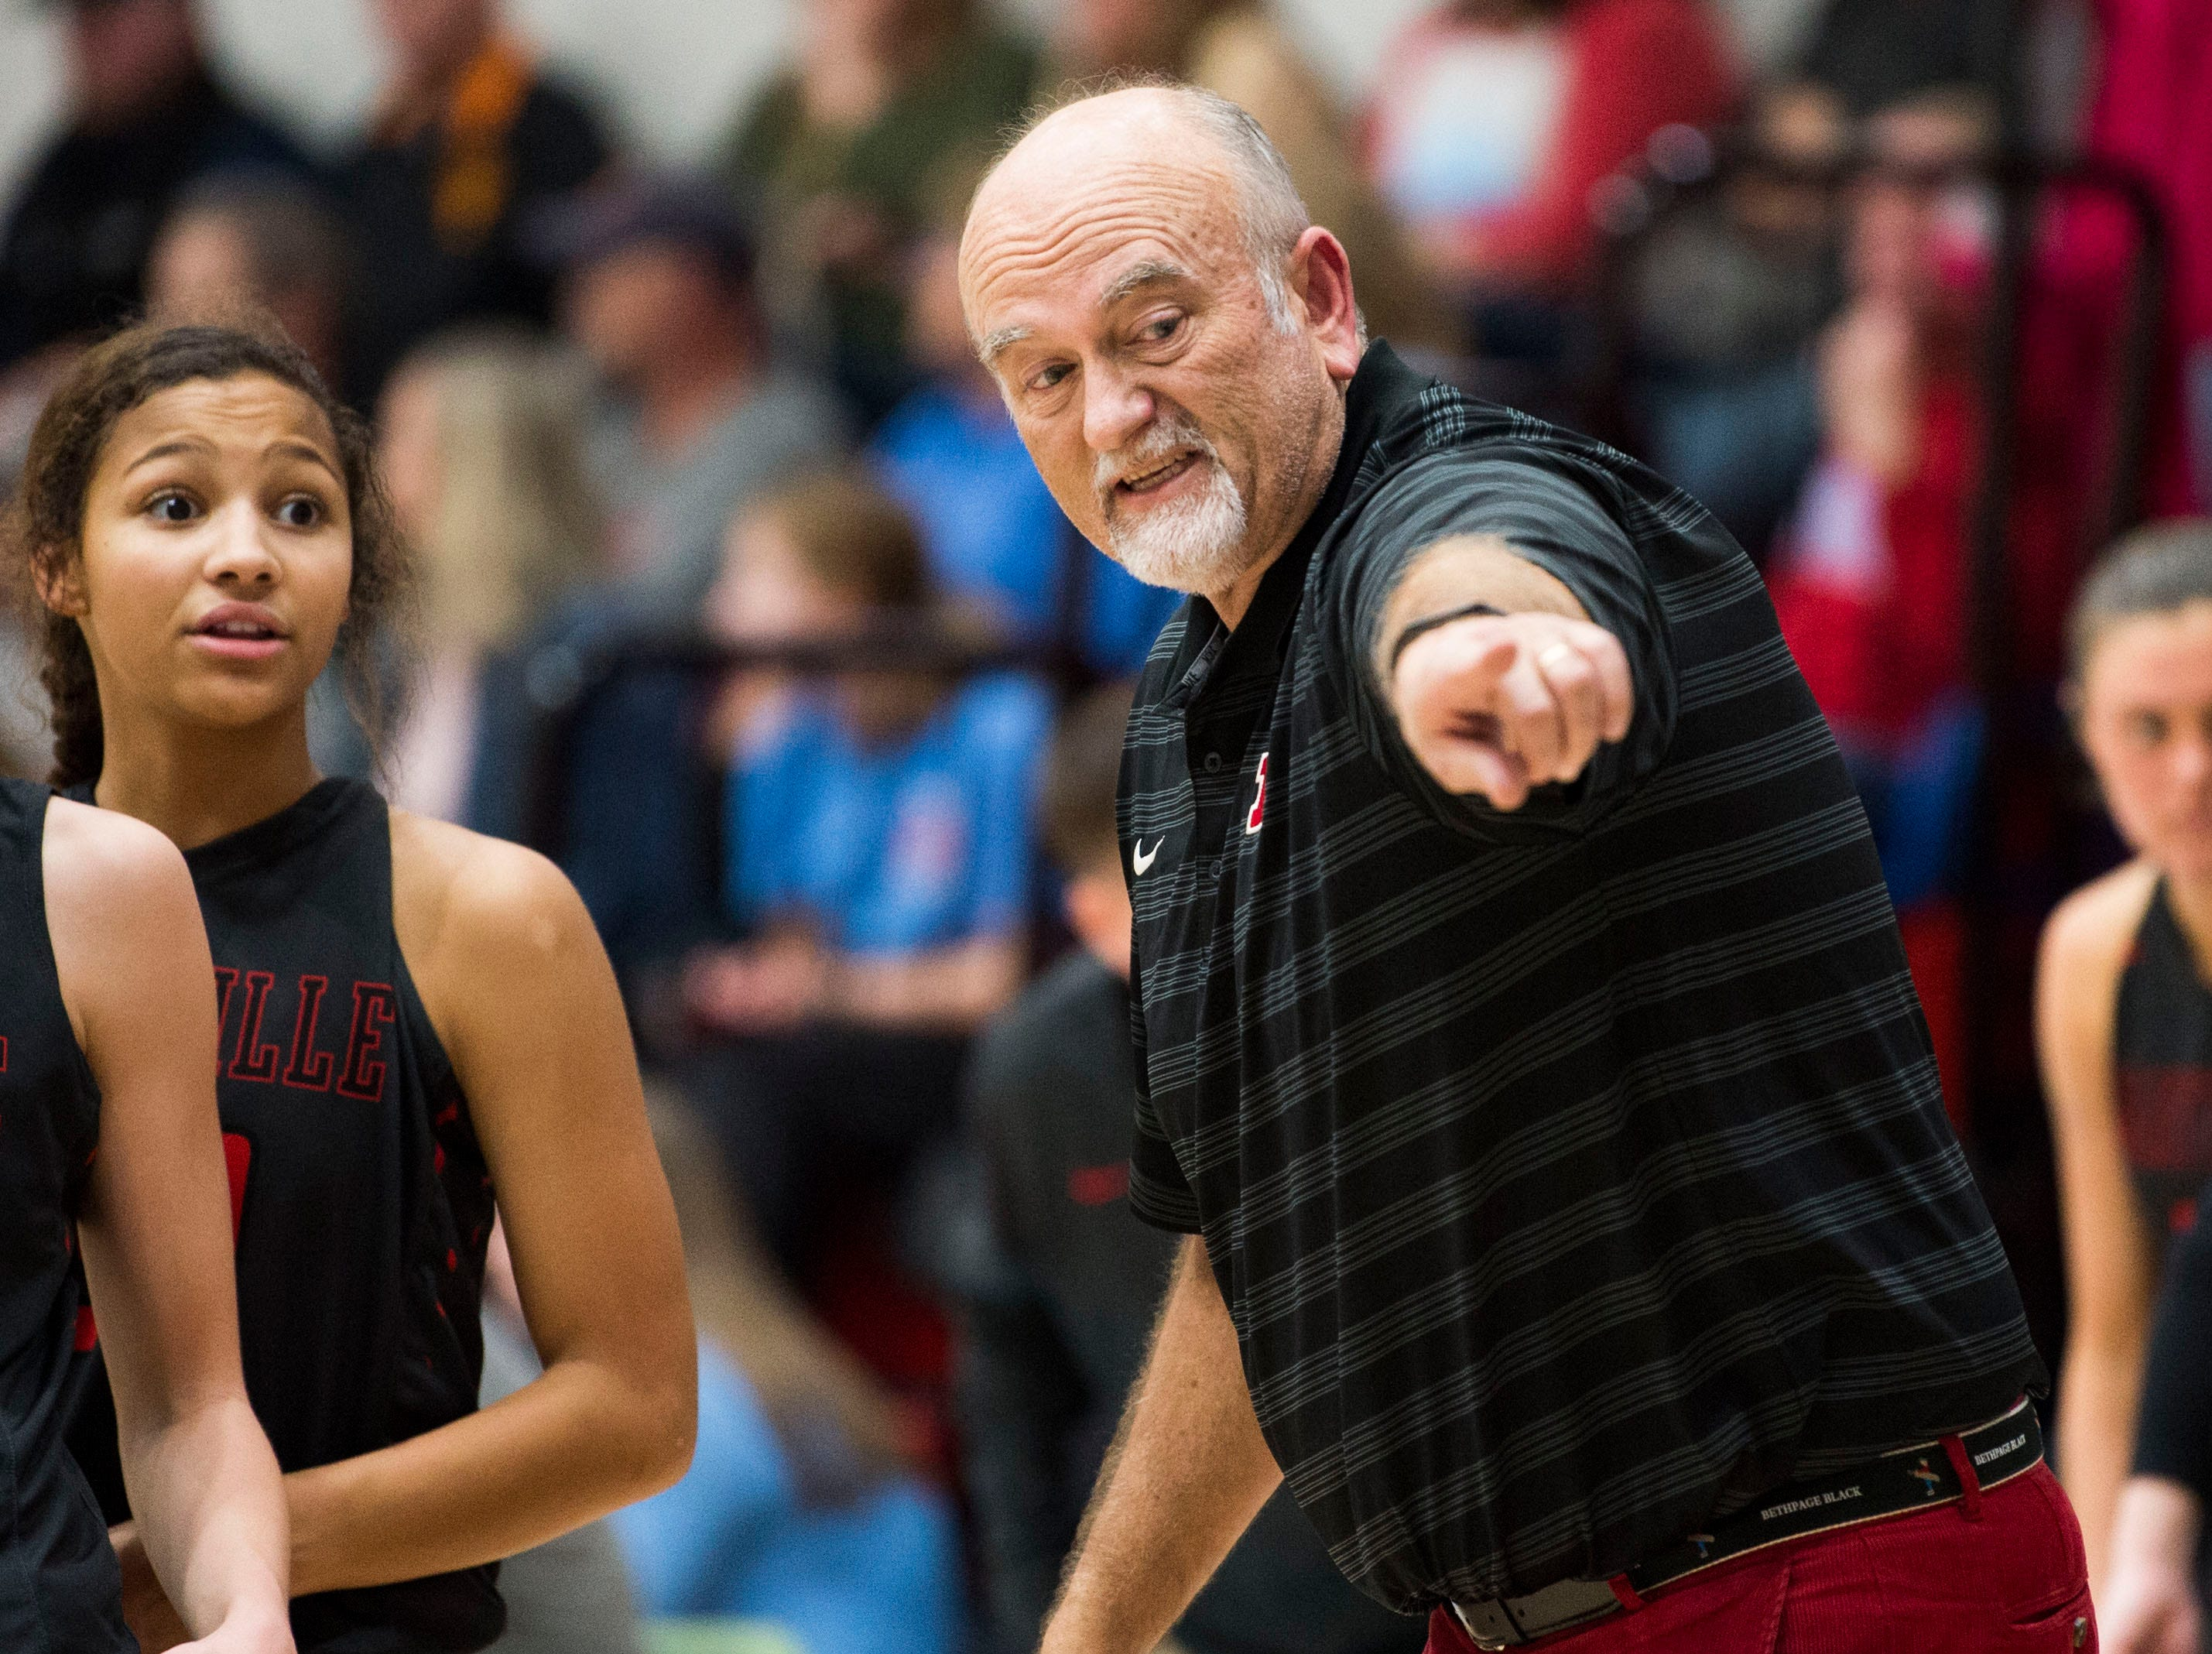 Maryville girls basketball coach Scott West points to the court during a high school basketball game between Maryville and Heritage at Heritage Friday, Jan. 4, 2019. Both Maryville boys and girls teams beat Heritage.